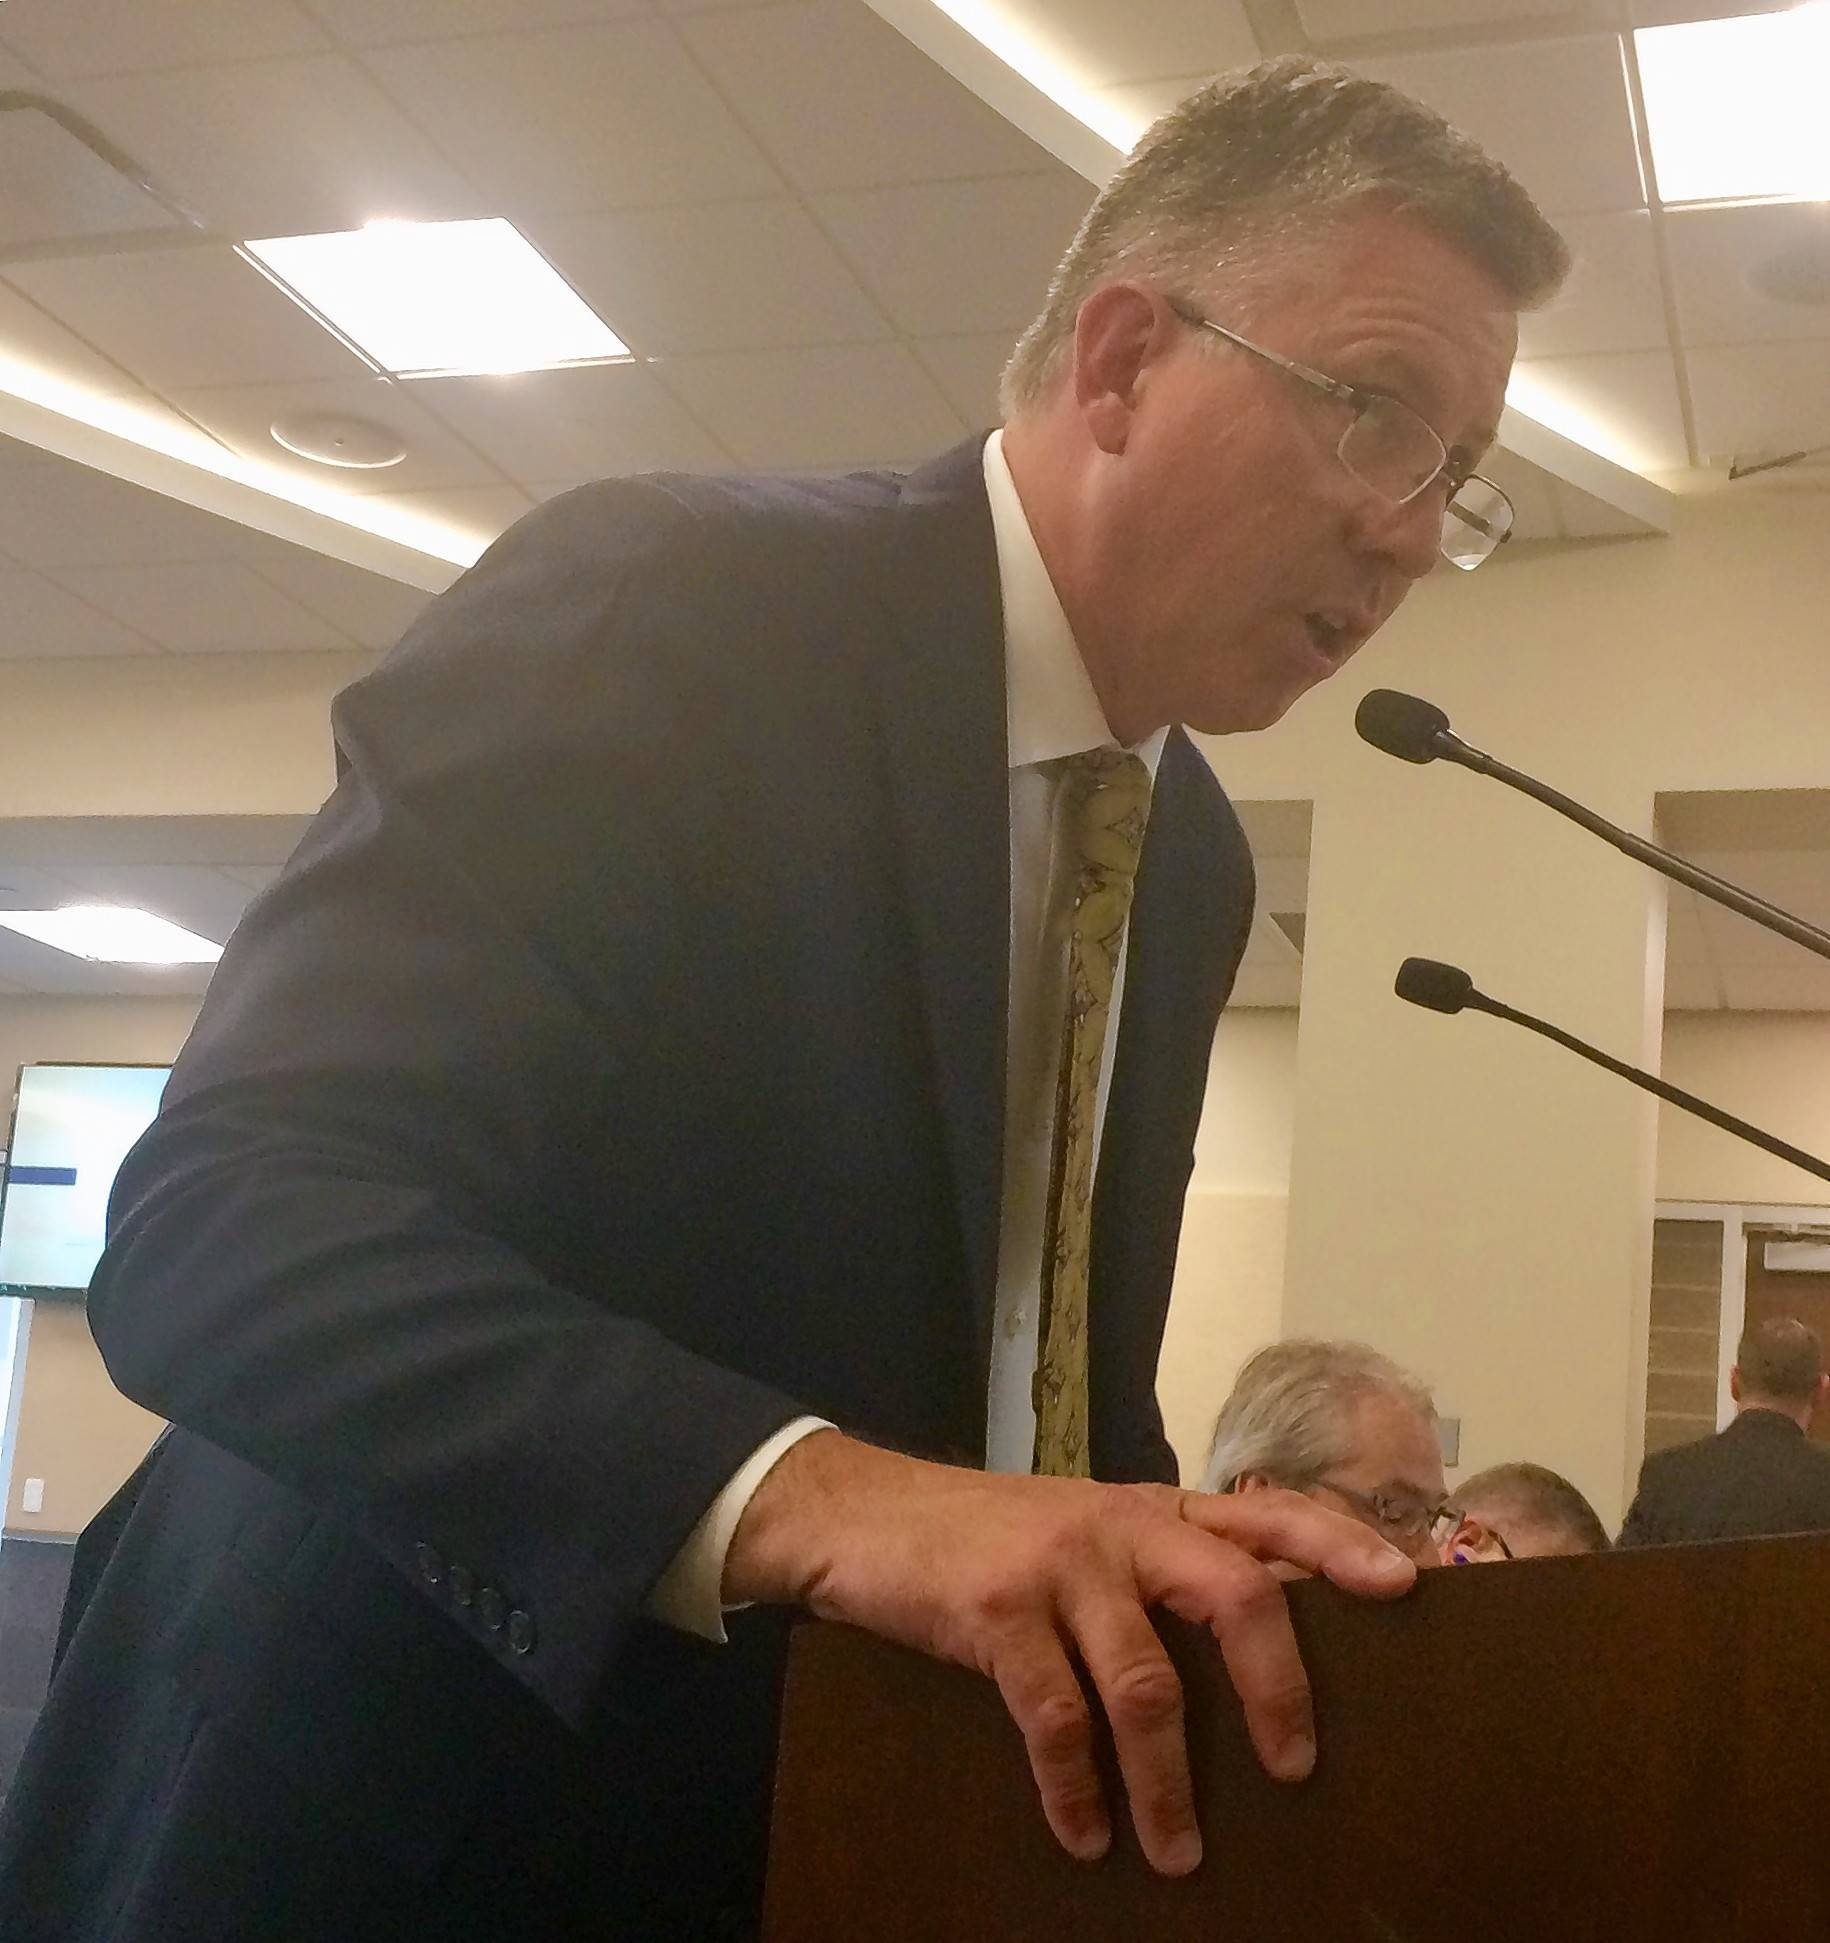 Arlington Heights real estate consultant Steve McEwen attended last week's Palatine village council session to speak against a measure requiring automatic sprinkler systems in new single-family homes.